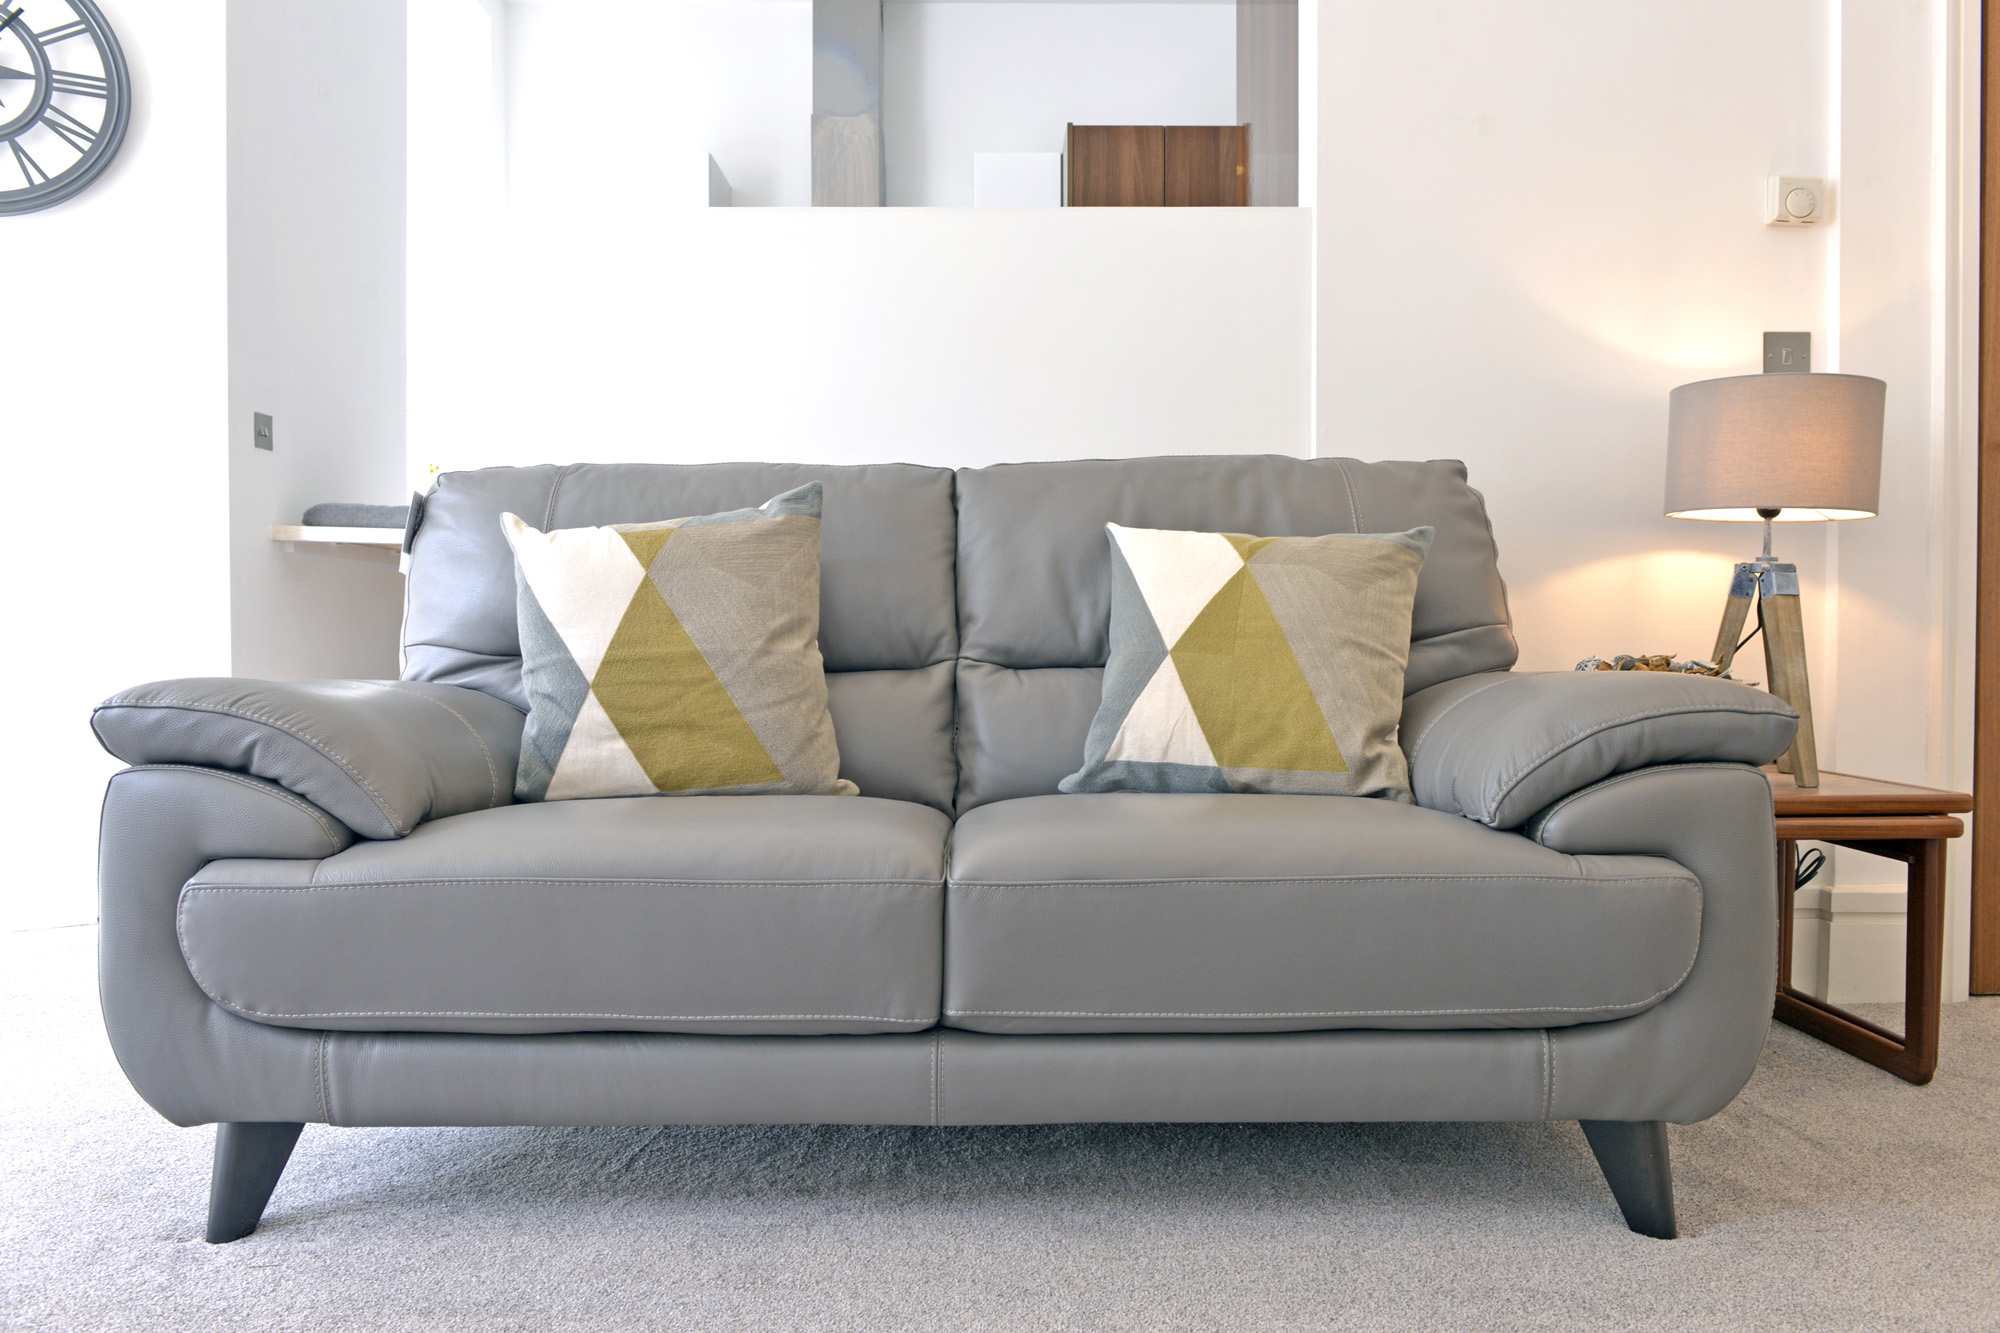 Sofa Bed Eastbourne Holiday Flats Eastbourne With One Bedroom For Romantic Getaways